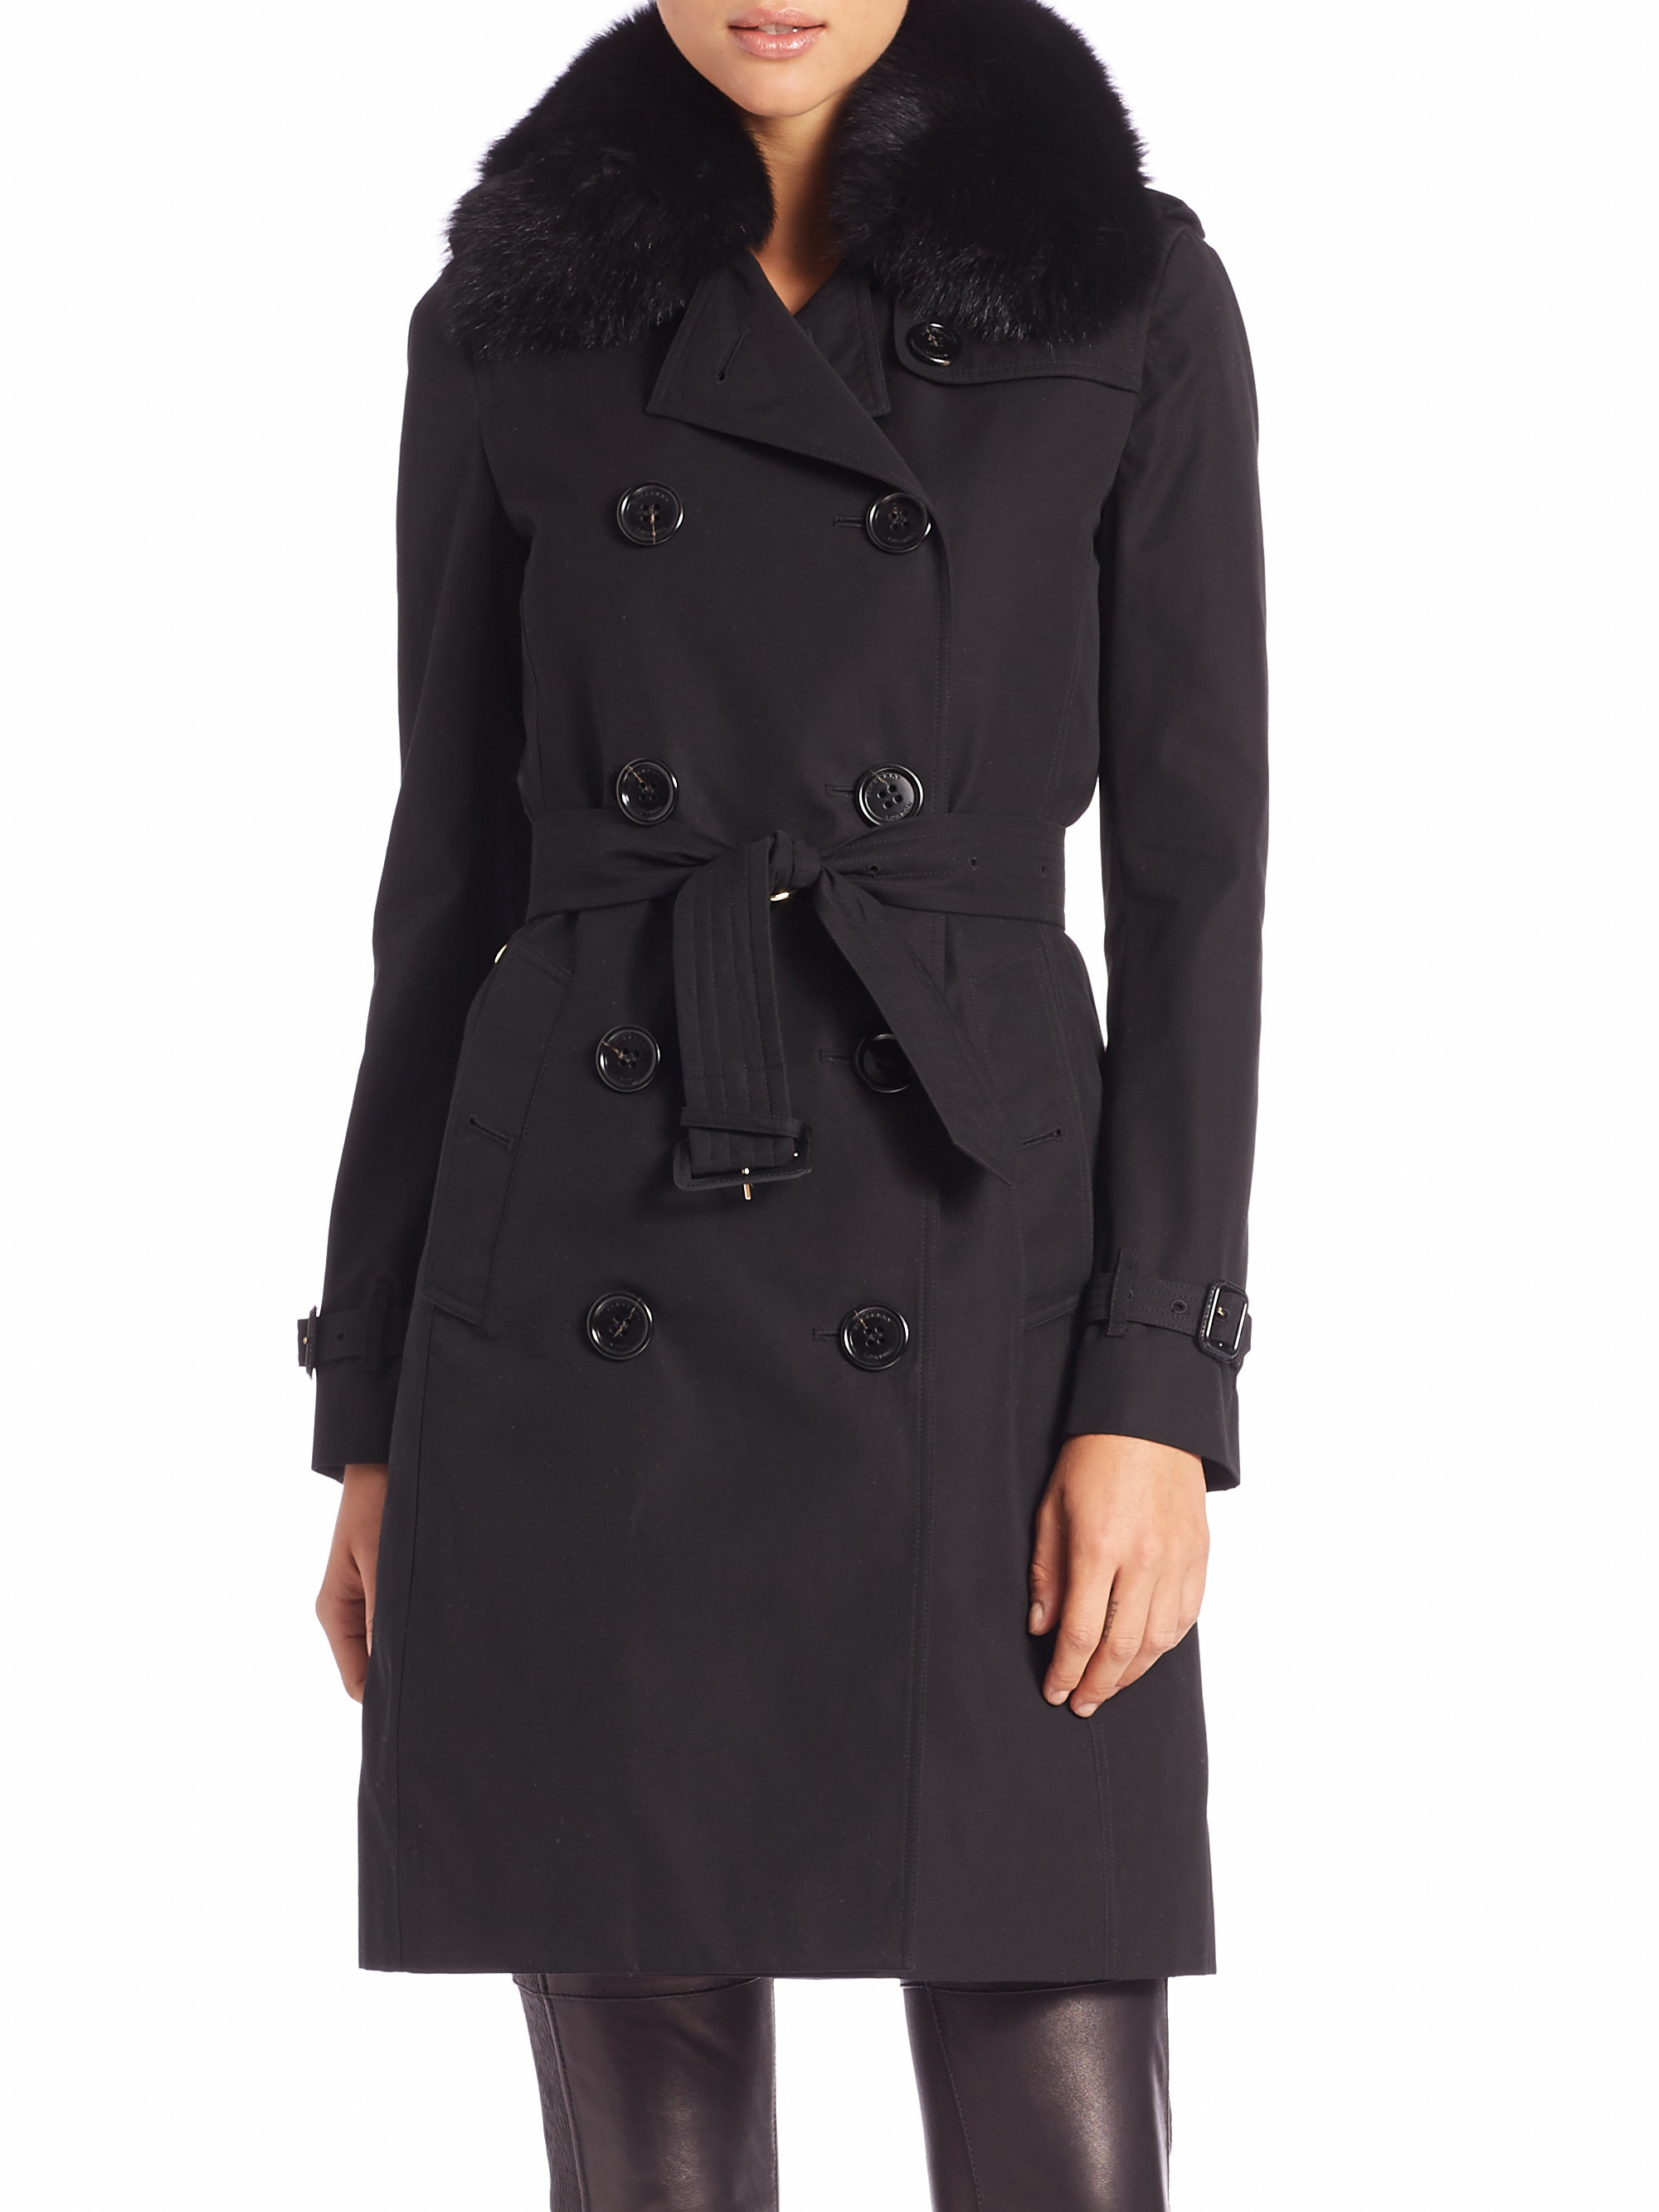 Burberry Fur Collar Trench Coat In Black Lyst